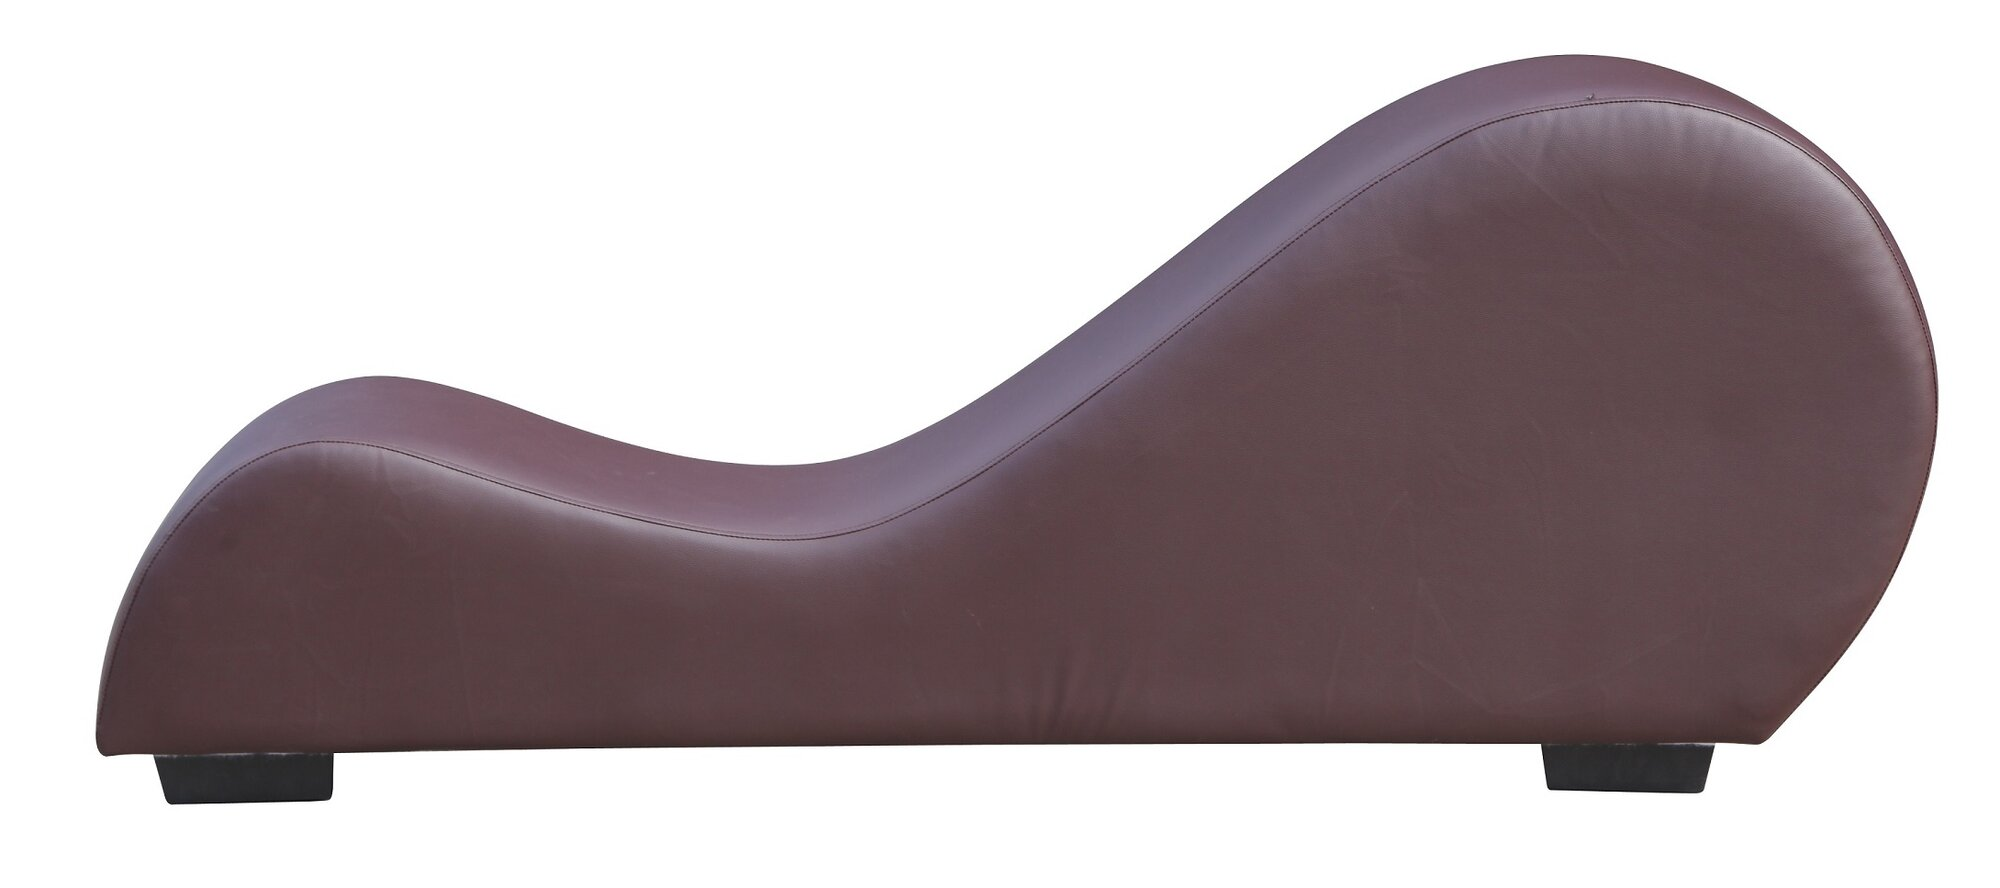 New spec inc yoga chaise lounge ebay for Chaise yoga